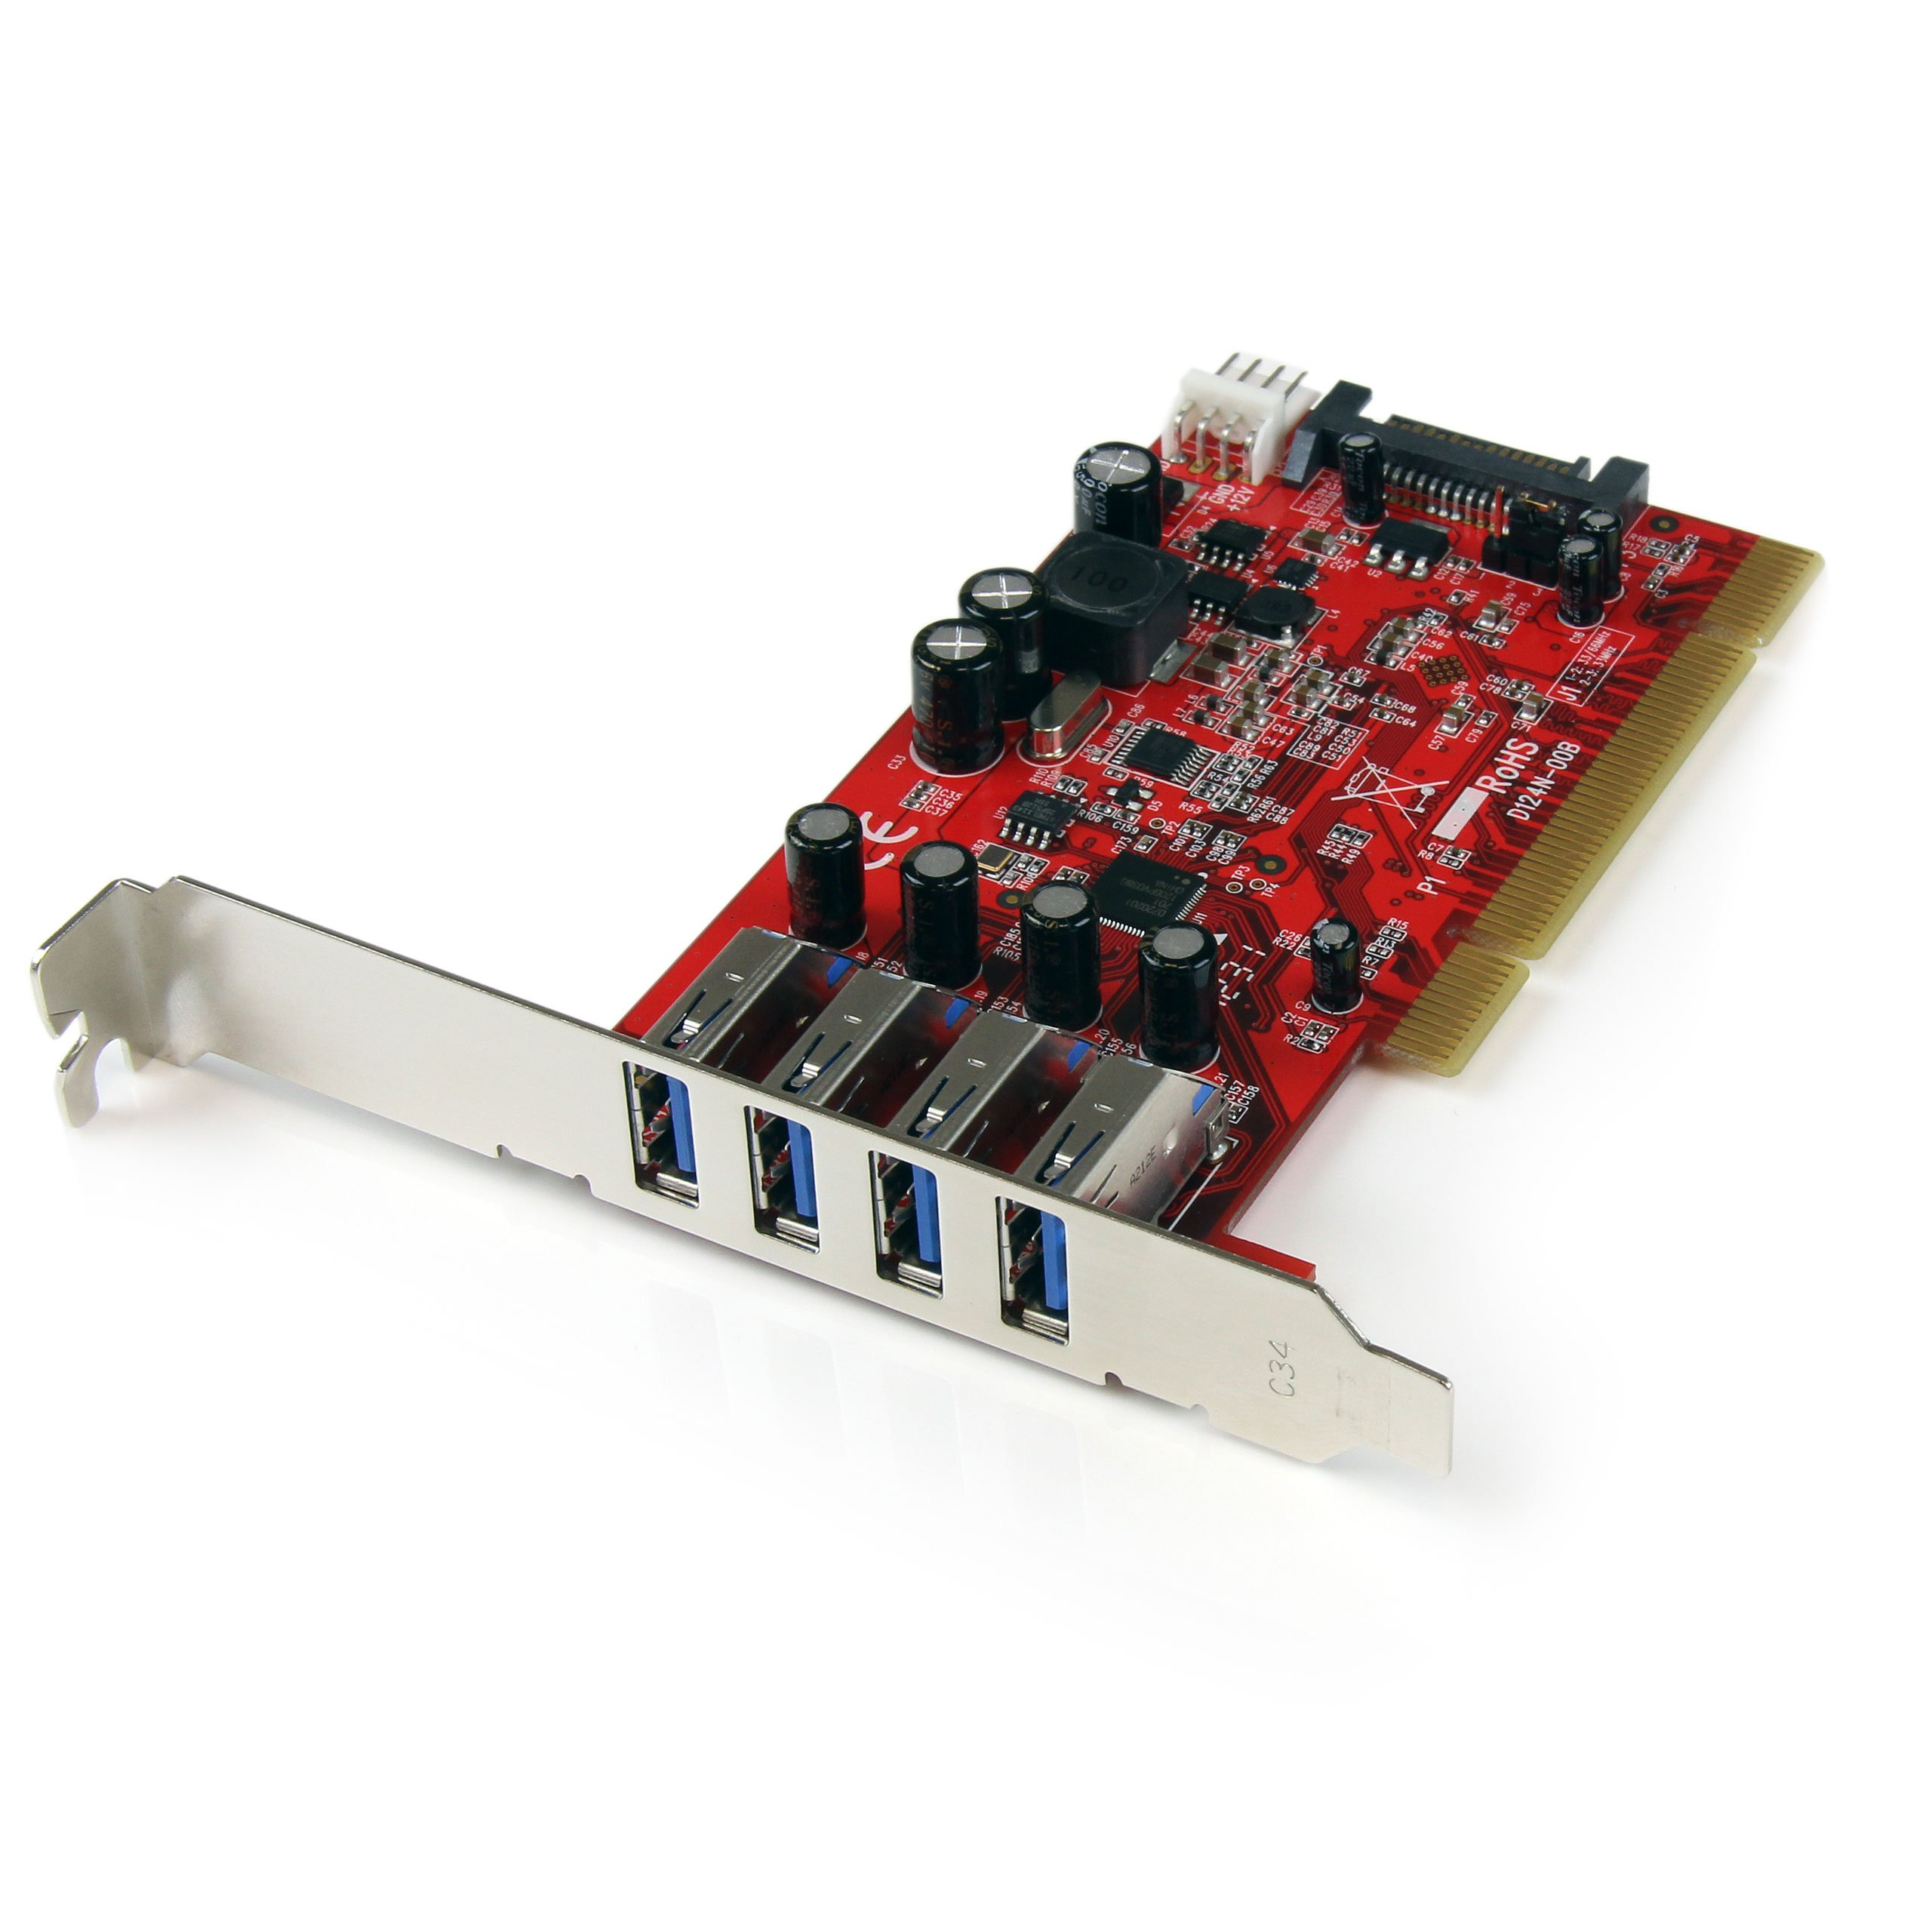 4 Port PCI SuperSpeed USB 3.0 Adapter Card with SATA/SP4 Pow